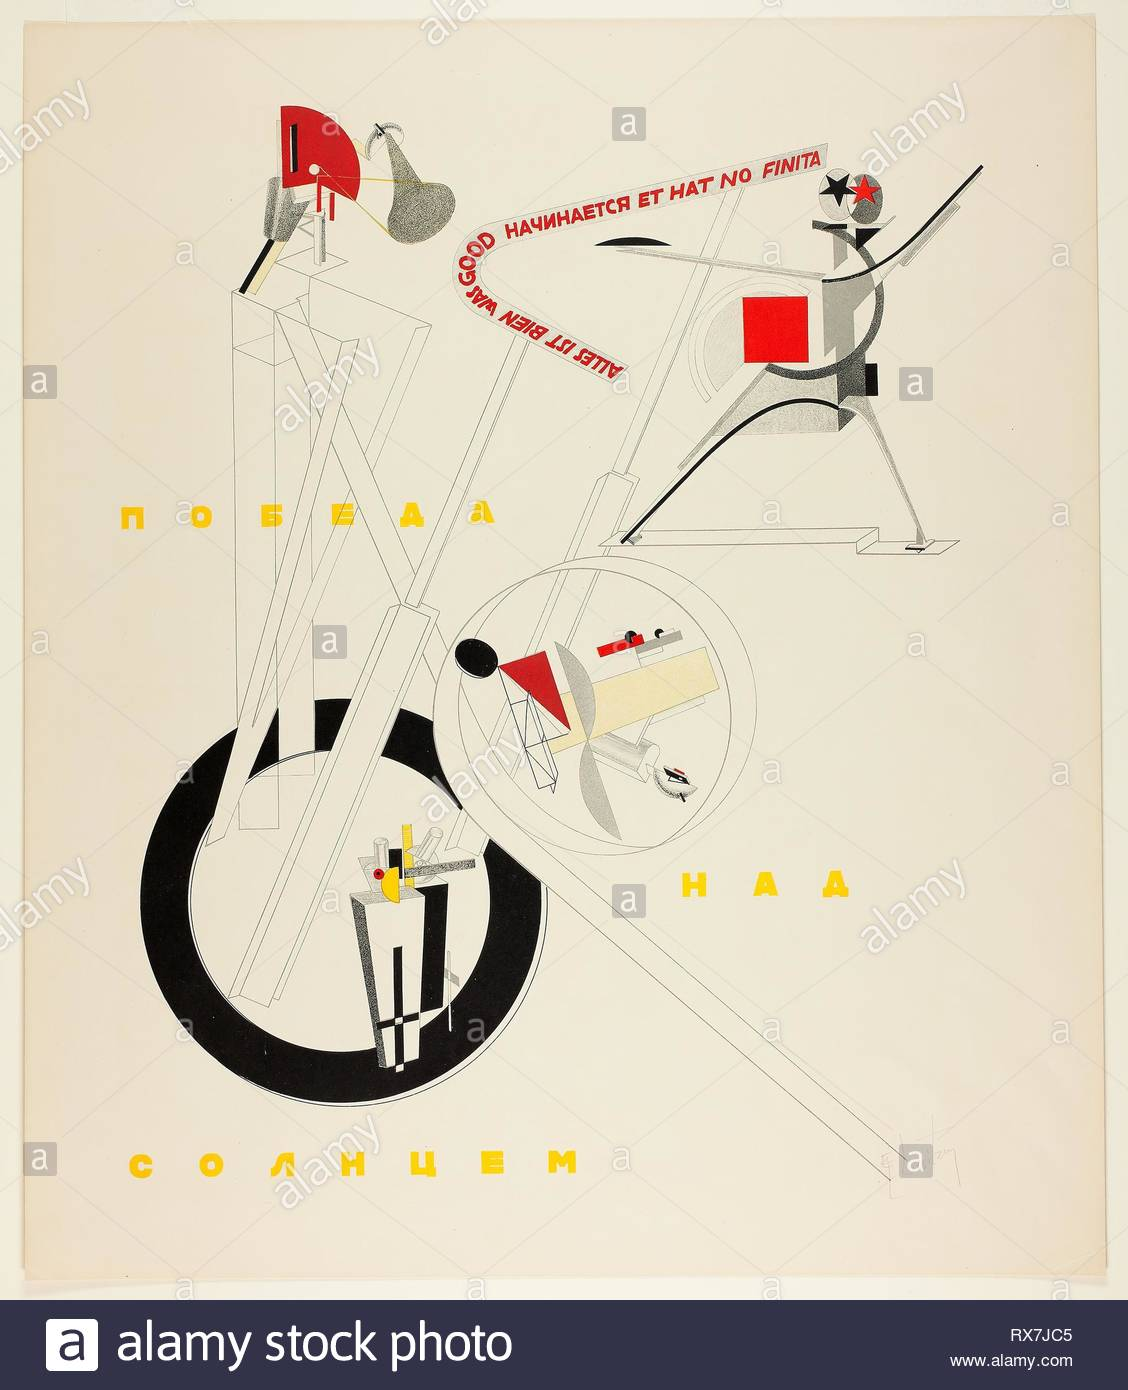 Title Sheet: Part of the Show Machinery, plate one from Figurines: The Three-Dimensional Design of the Electro-Mechanical Show: 'Victory over the Sun'. El Lissitzky (Lazar Markovich Lissitzky); Russian, 1890-1941. Date: 1923. Dimensions: 532 x 450 mm. Color lithograph on wove paper. Origin: Russia. Museum: The Chicago Art Institute. - Stock Image